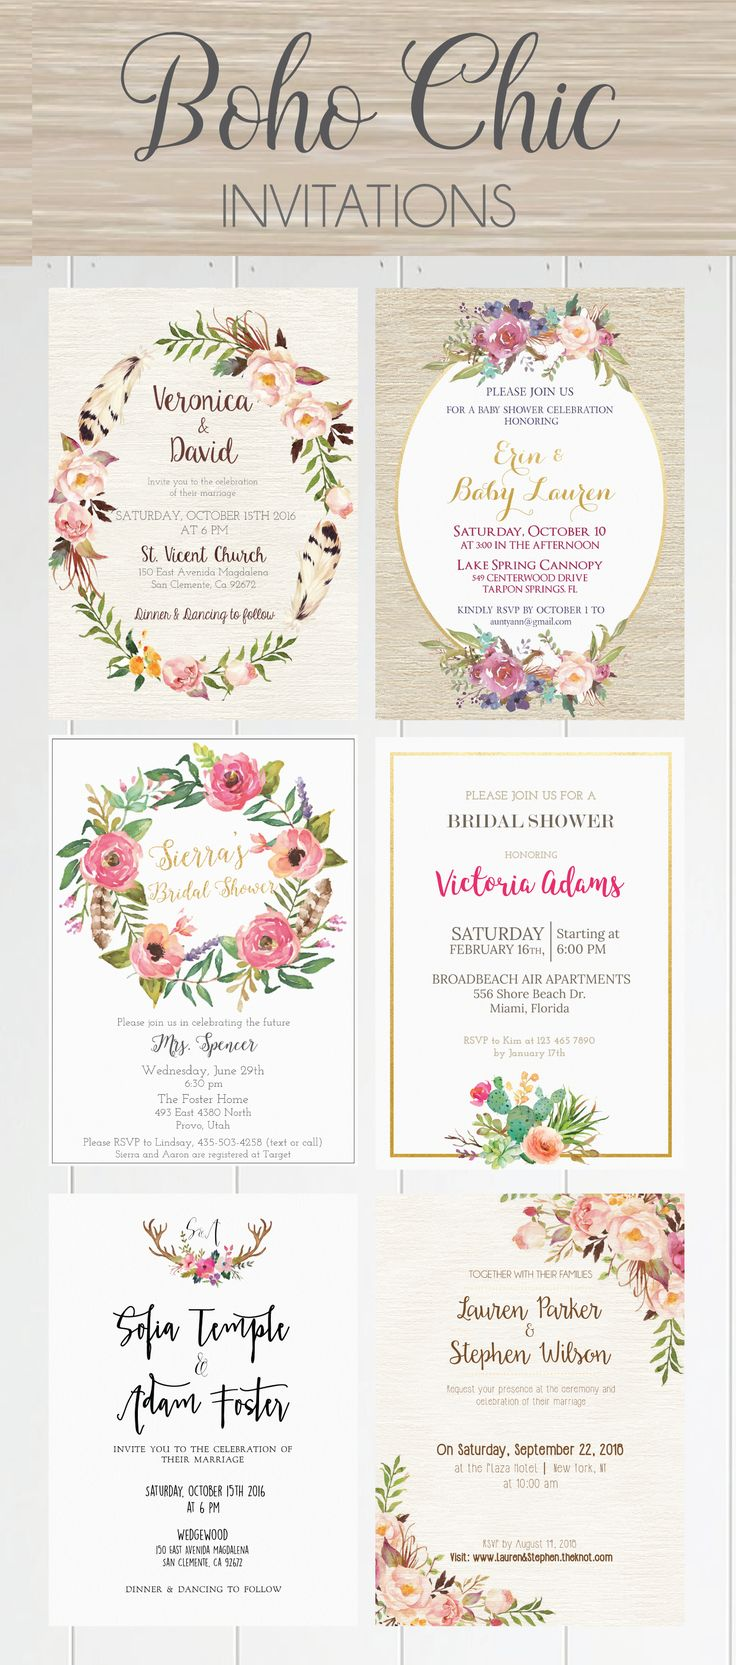 Beautiful Boho Chic Invites! ♥ Today we're sharing the most amazing boho chic…